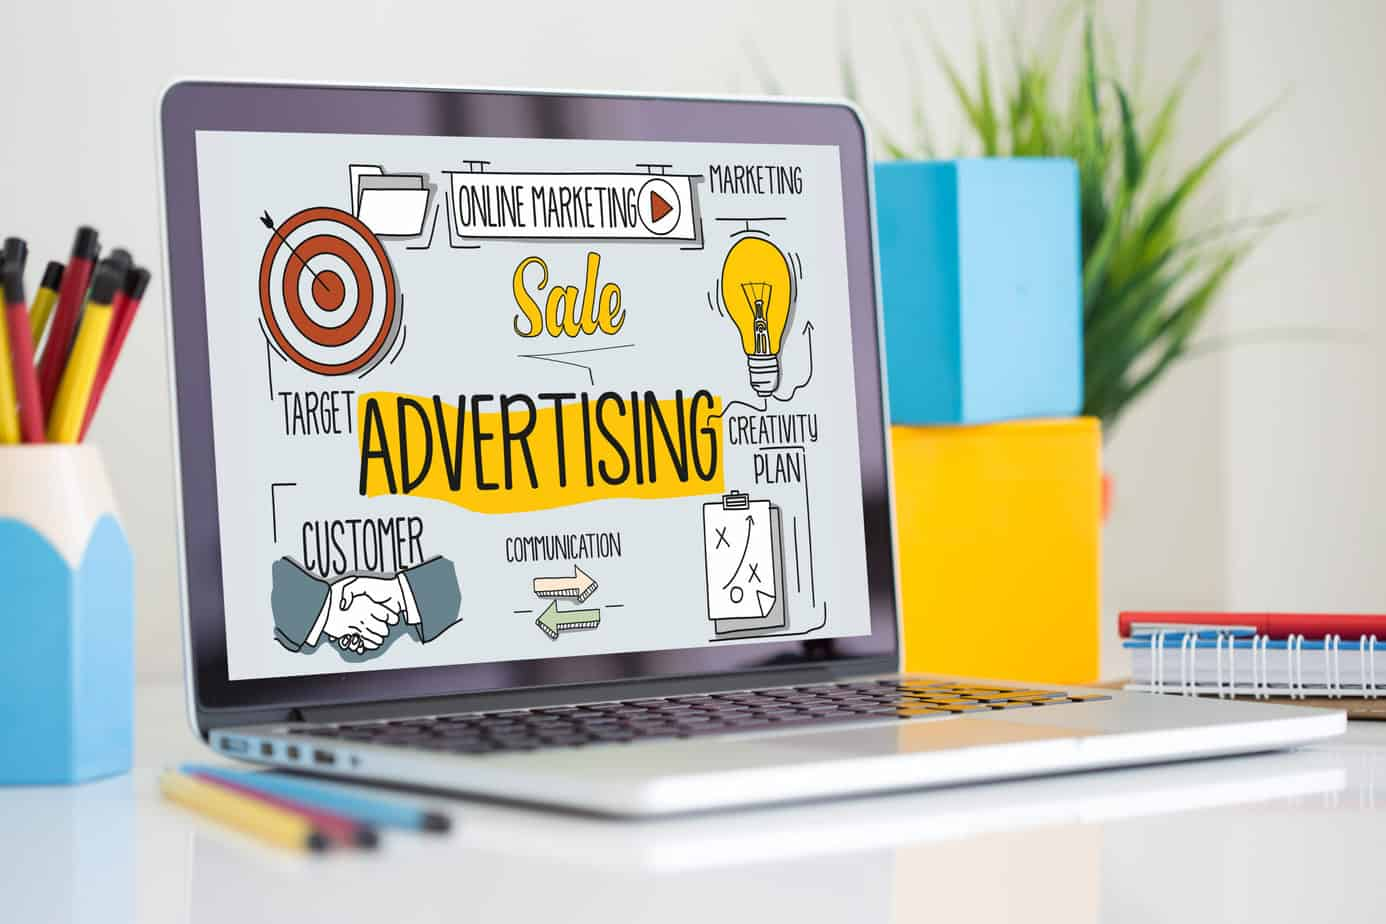 A laptop with the advertising online marketing process displayed on the screen